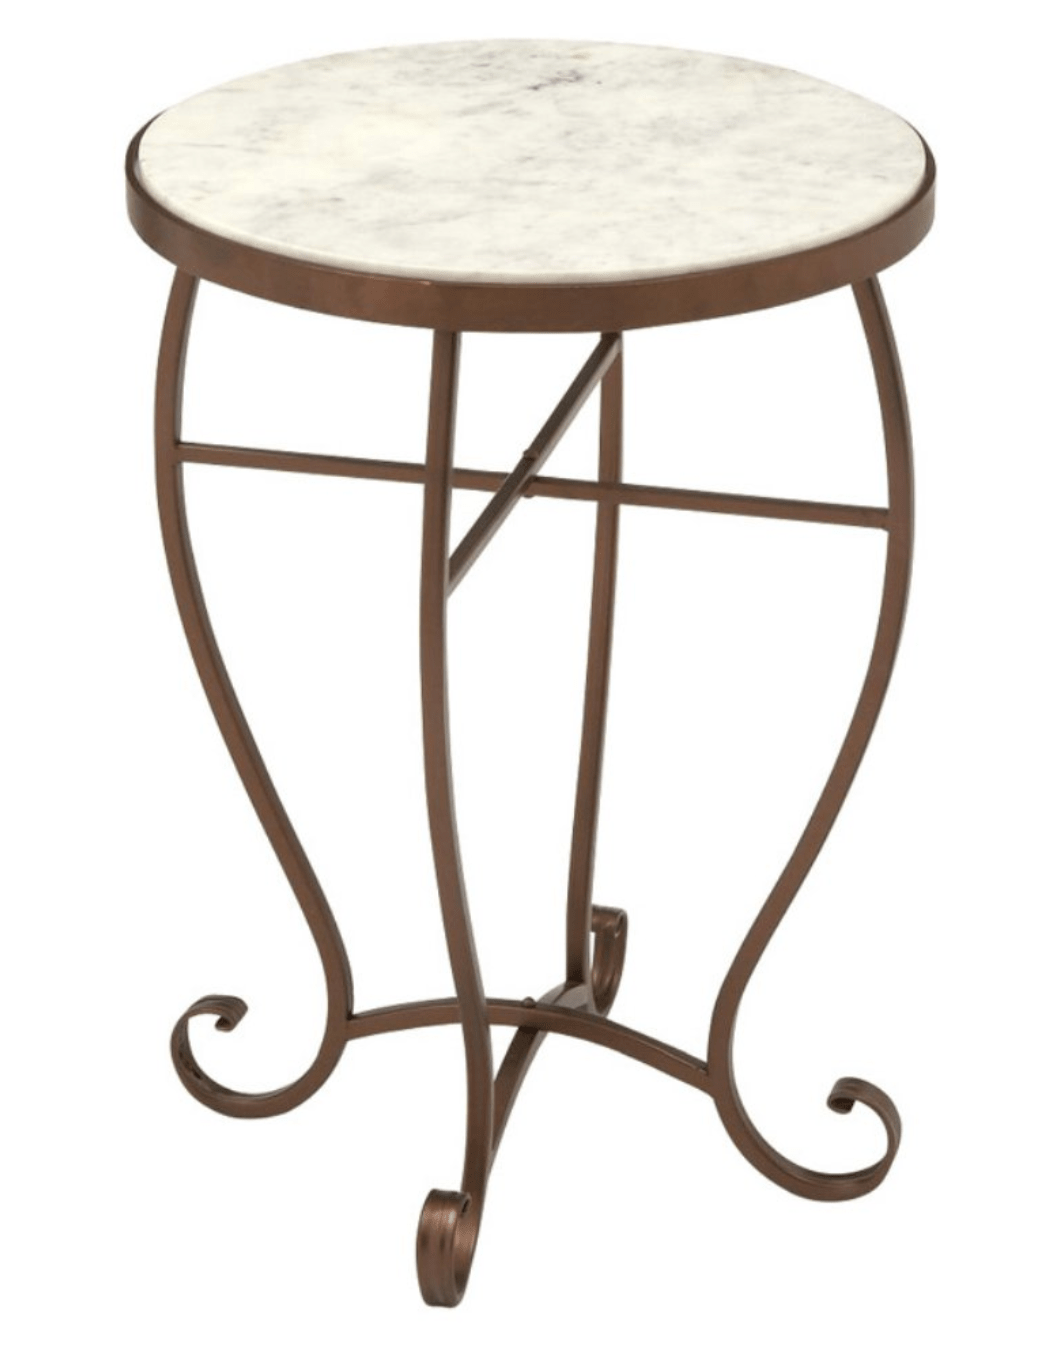 exciting marble accent table set bistro threshold top wood round antique small target faux killian nero metal lamp black and full size occasional tables for living room steel